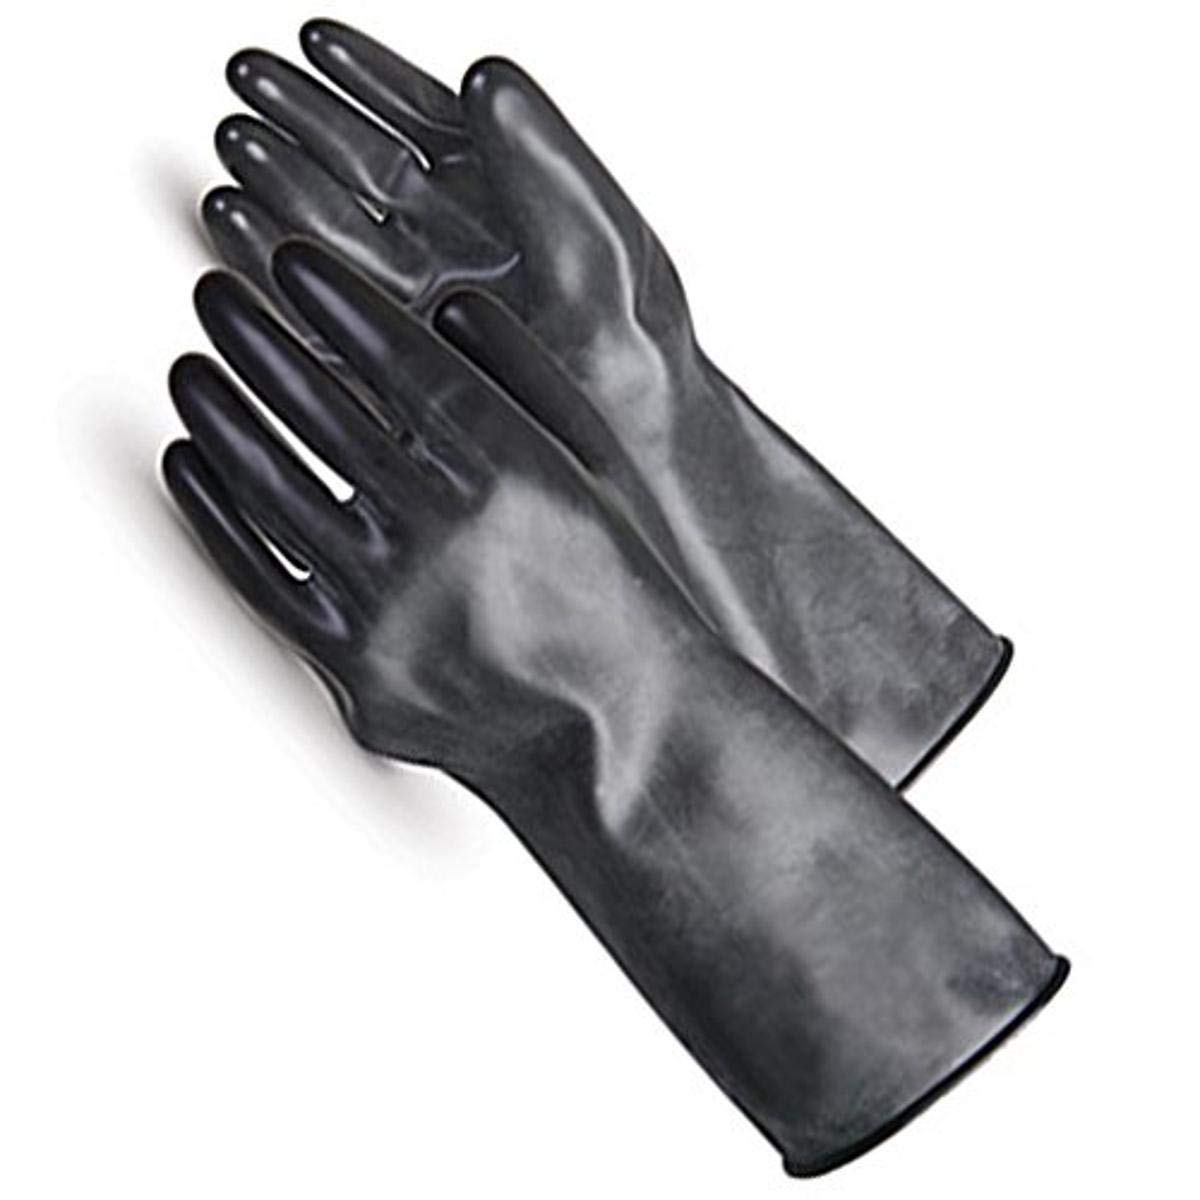 Guardian Glove IN-35 9 Protective Finish Smooth Gloves Max 83% OFF Curved Latest item